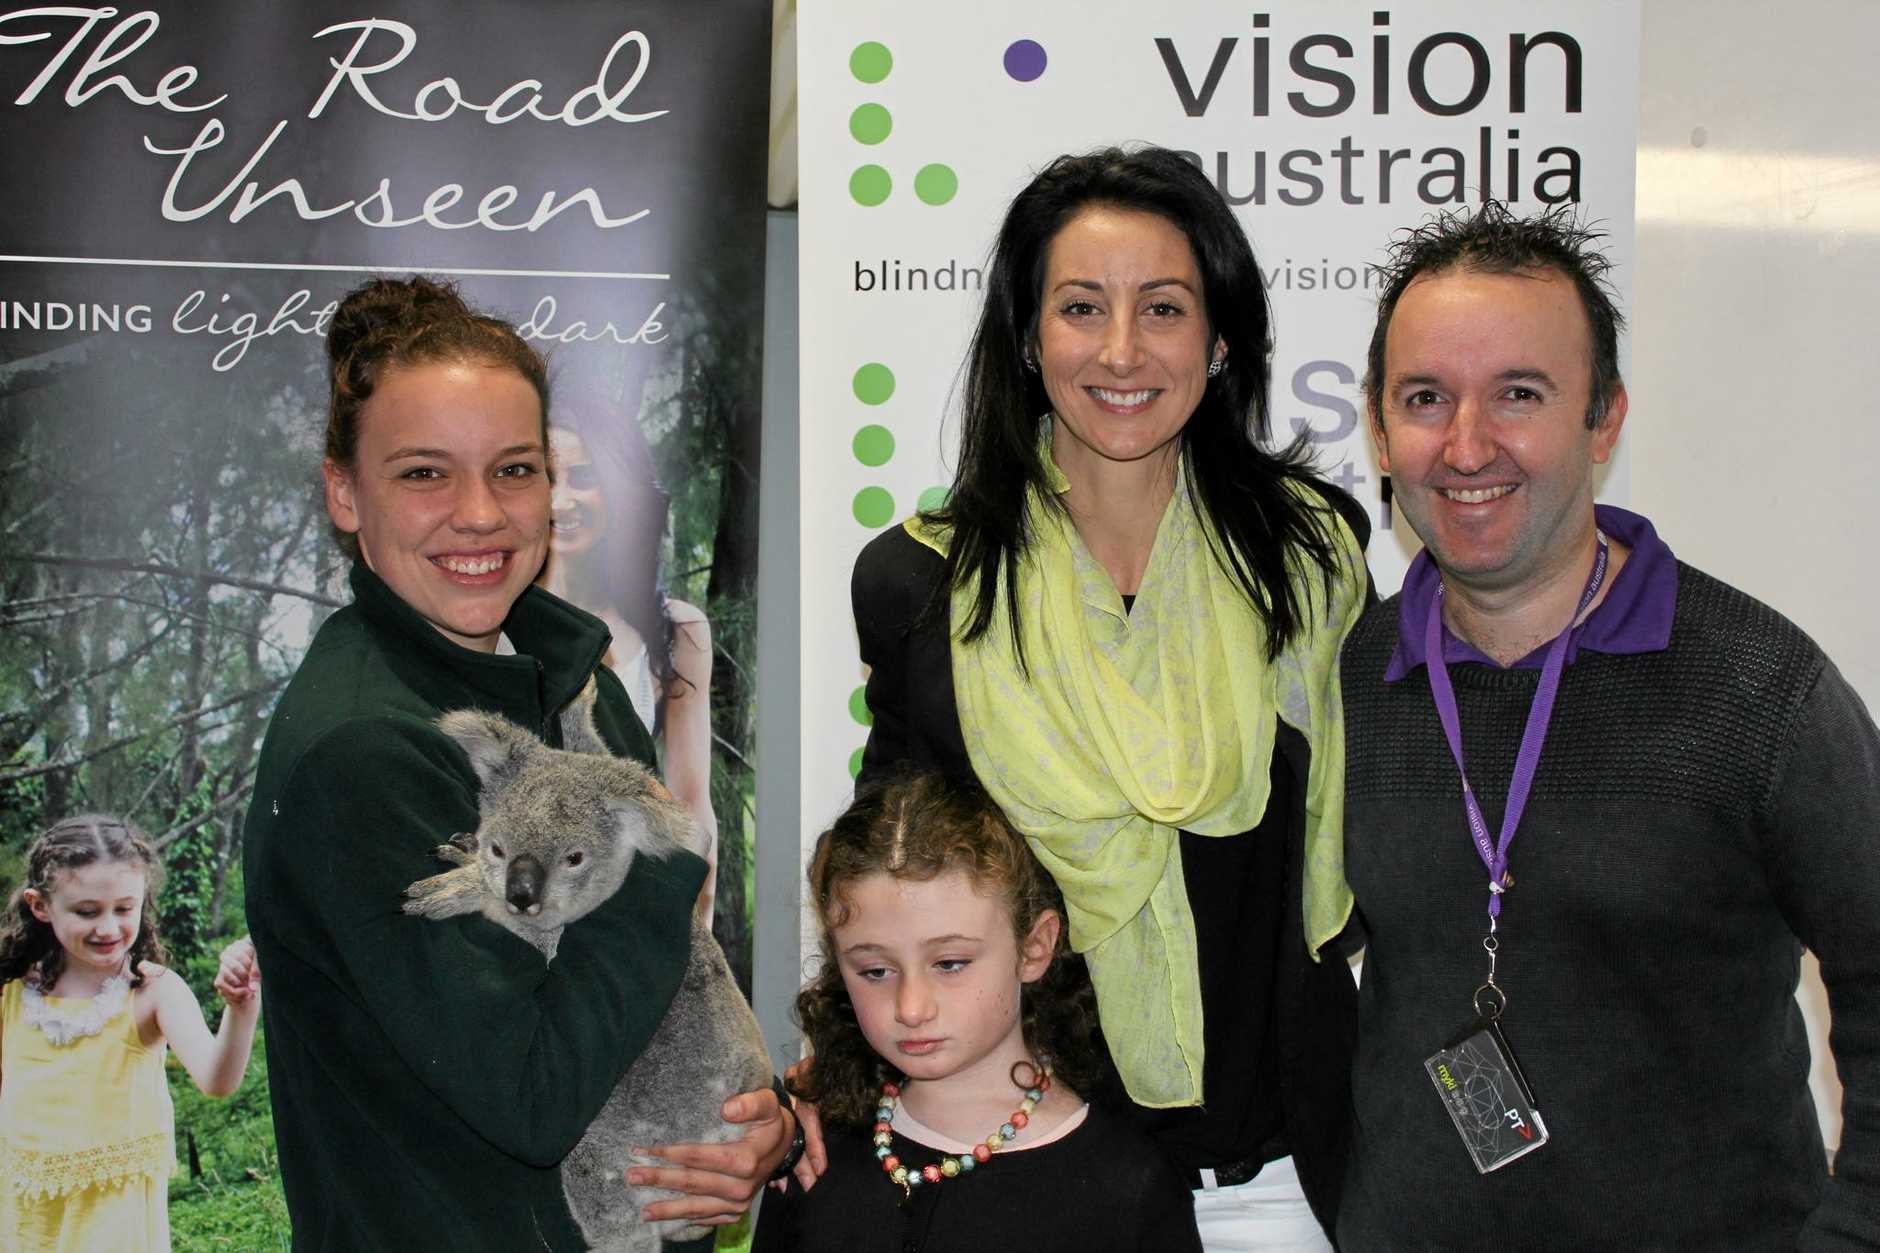 ZOO VISIT: Vision Australia and Australia Zoo organised a special day out for Mackenzie and Tanya.